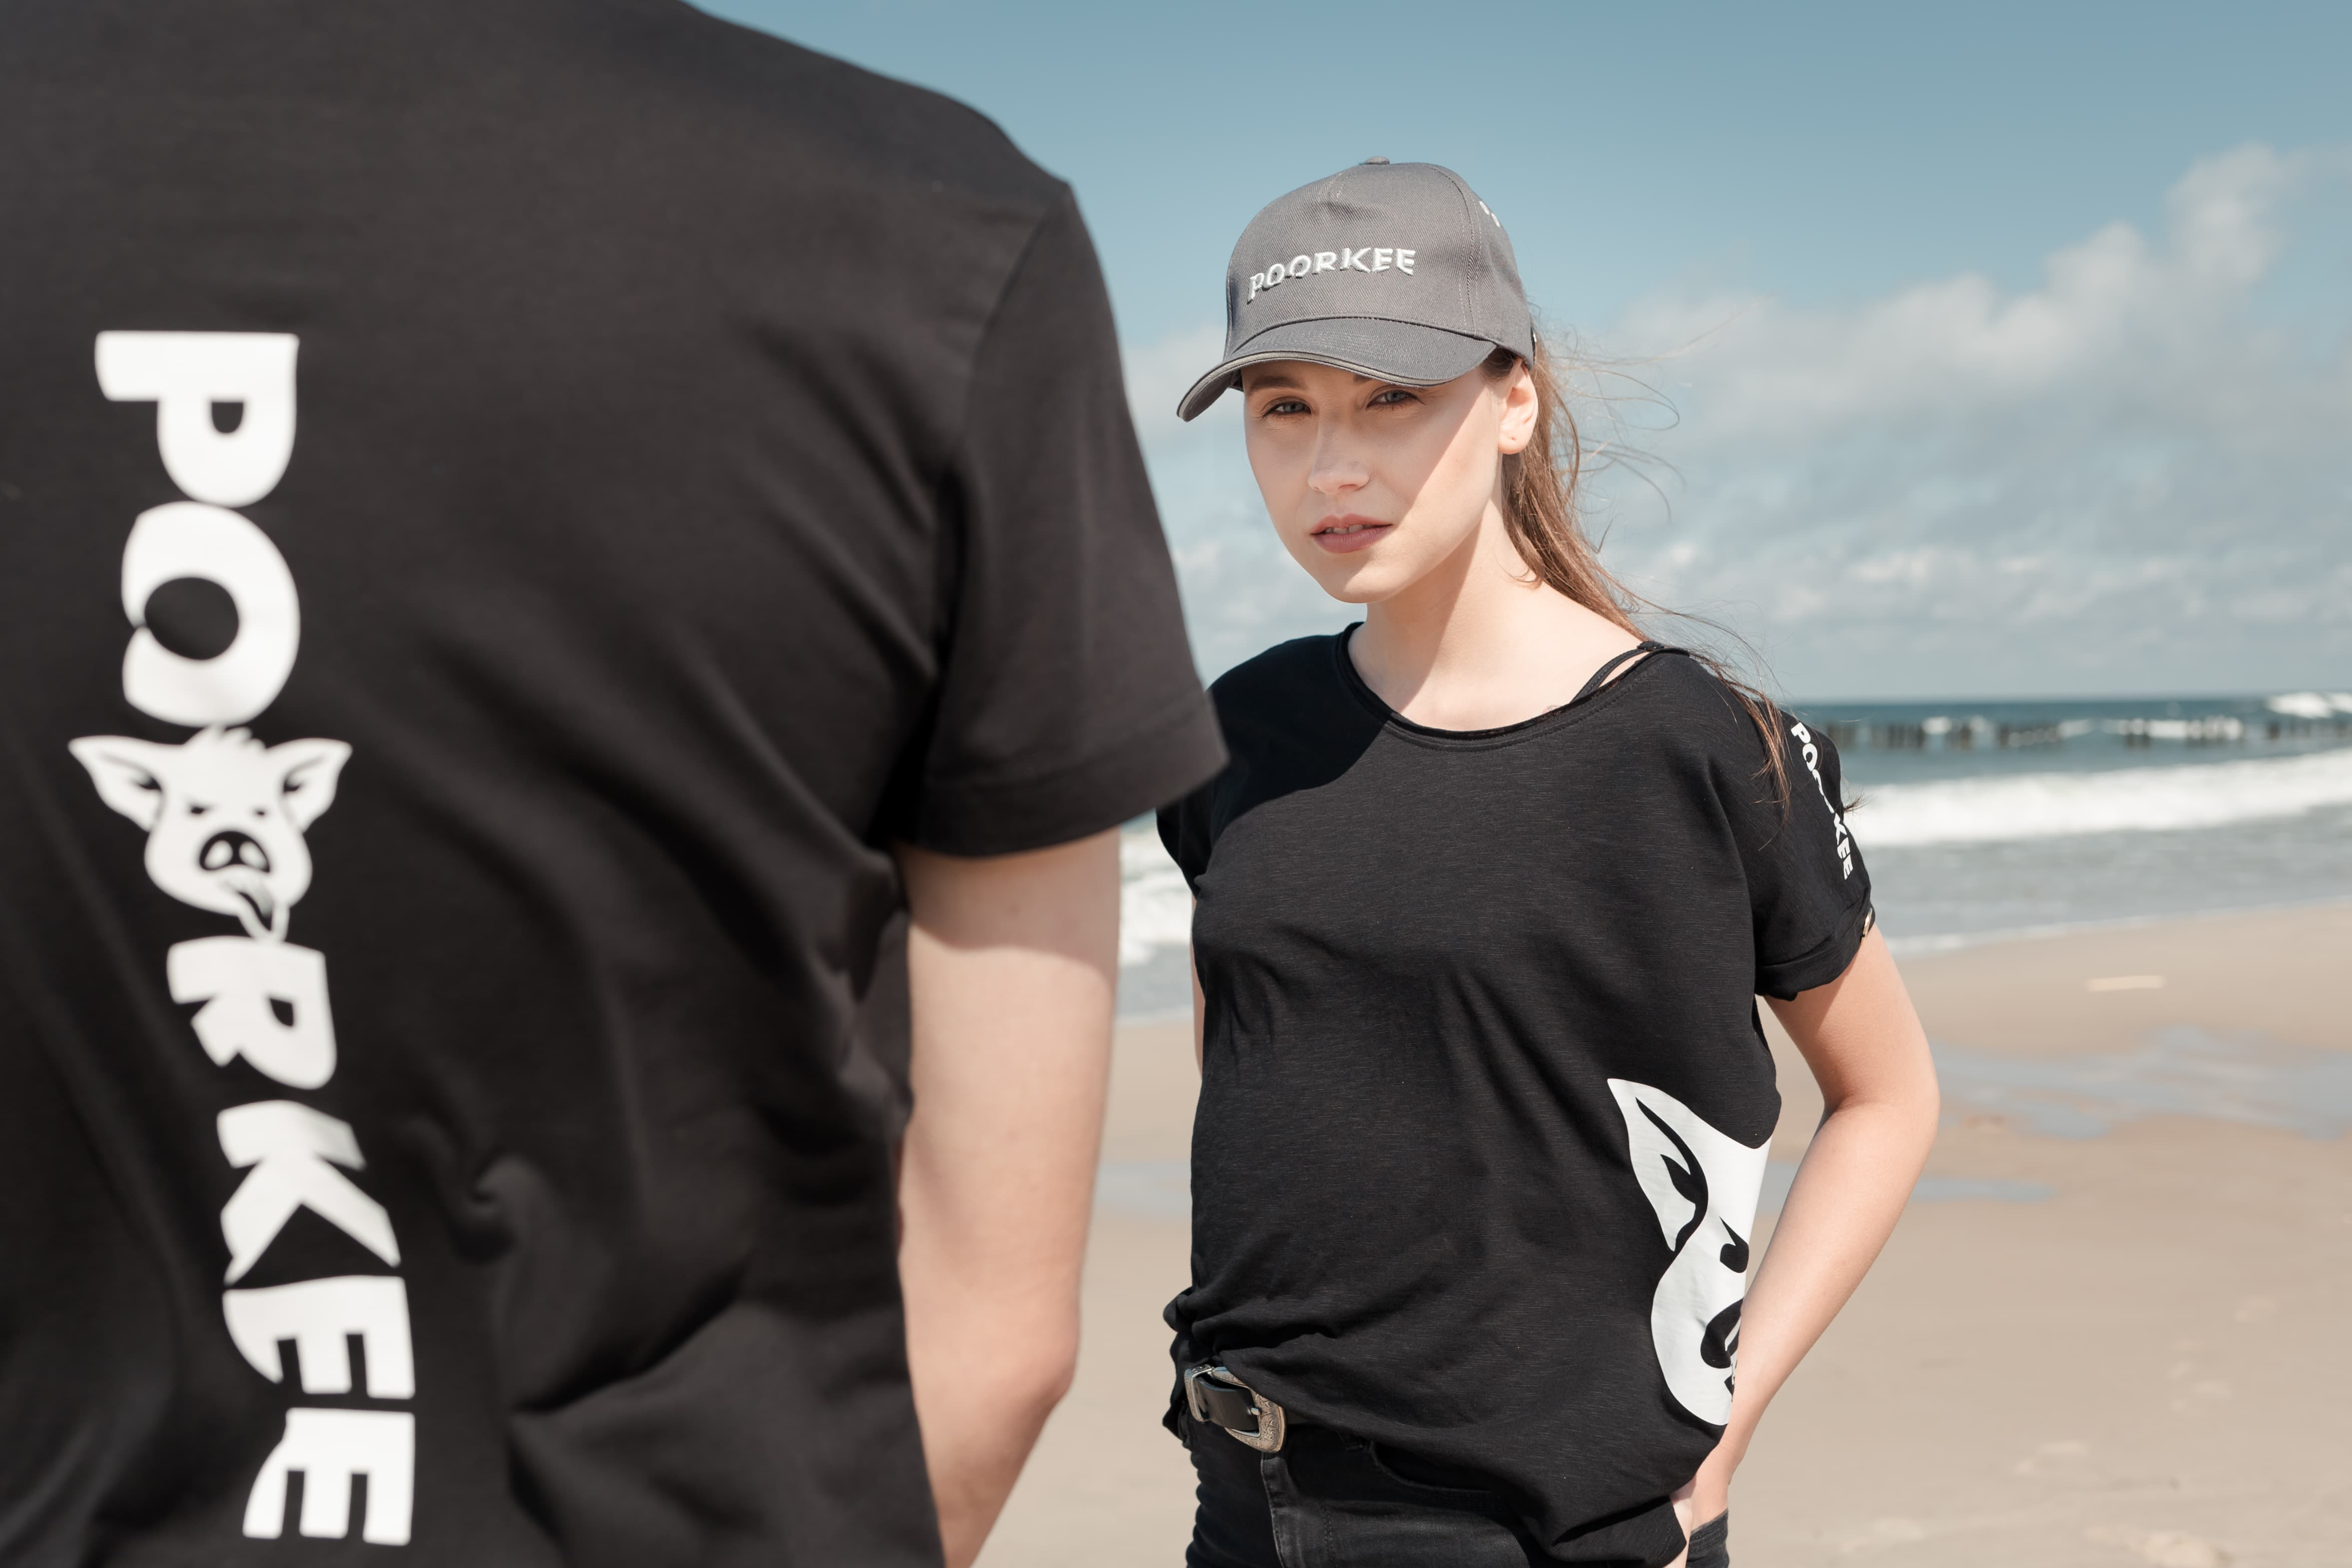 a girl in a black T-shirt and a gray baseball cap on the beach looks at the camera